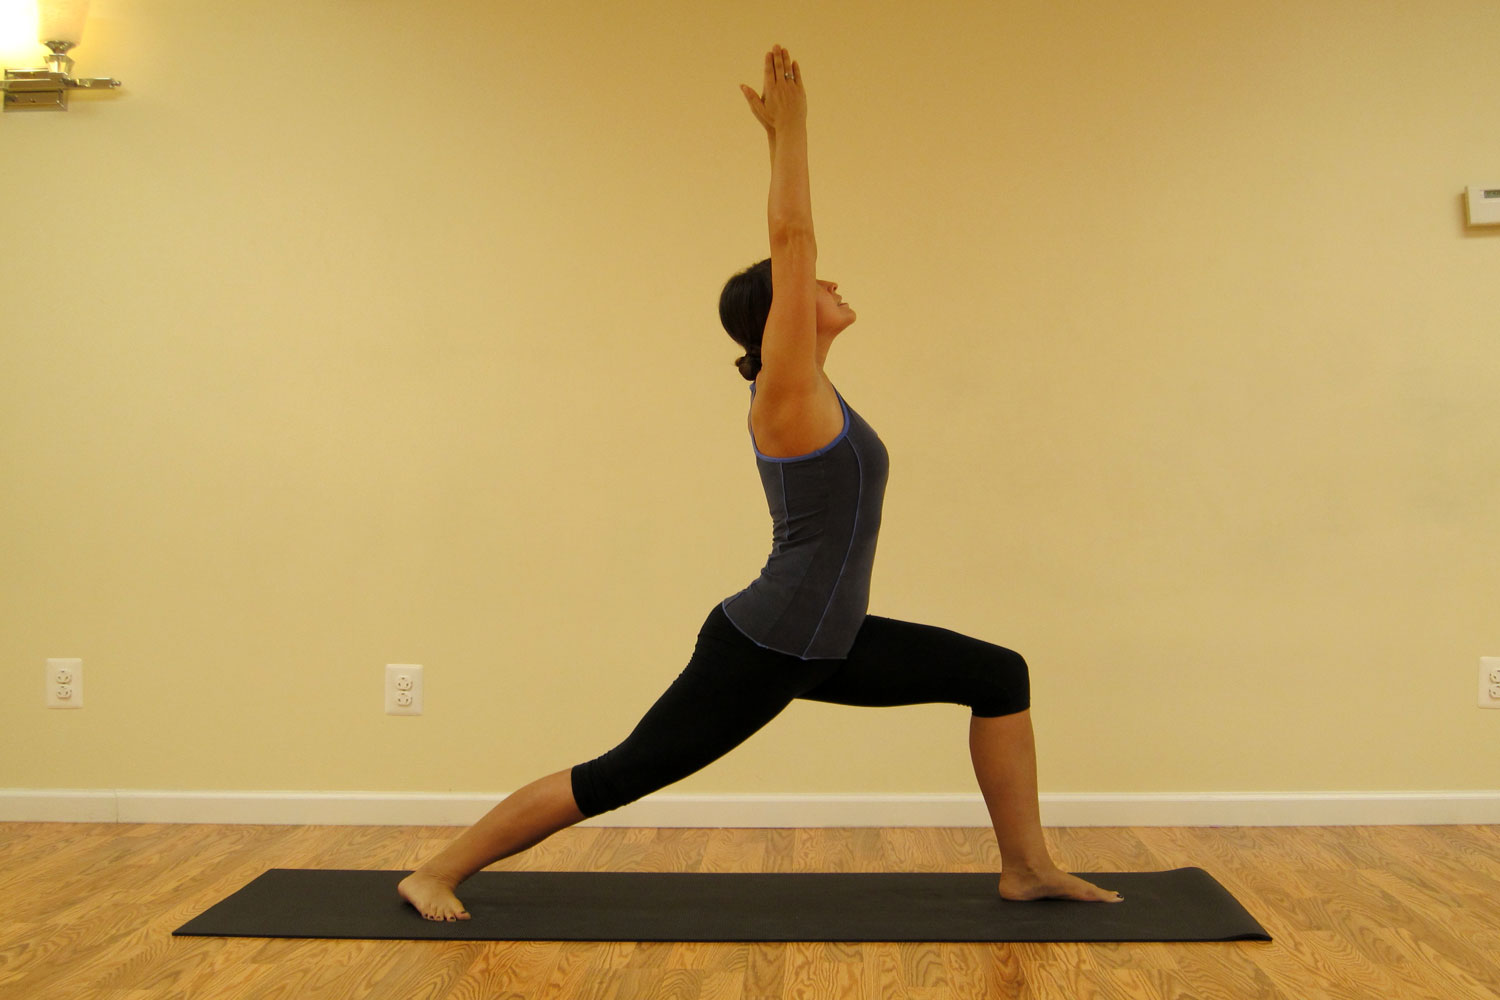 This is a studio that has been providing excellent yoga instruction long before the current trend and it will continue to do so when other yoga studios have